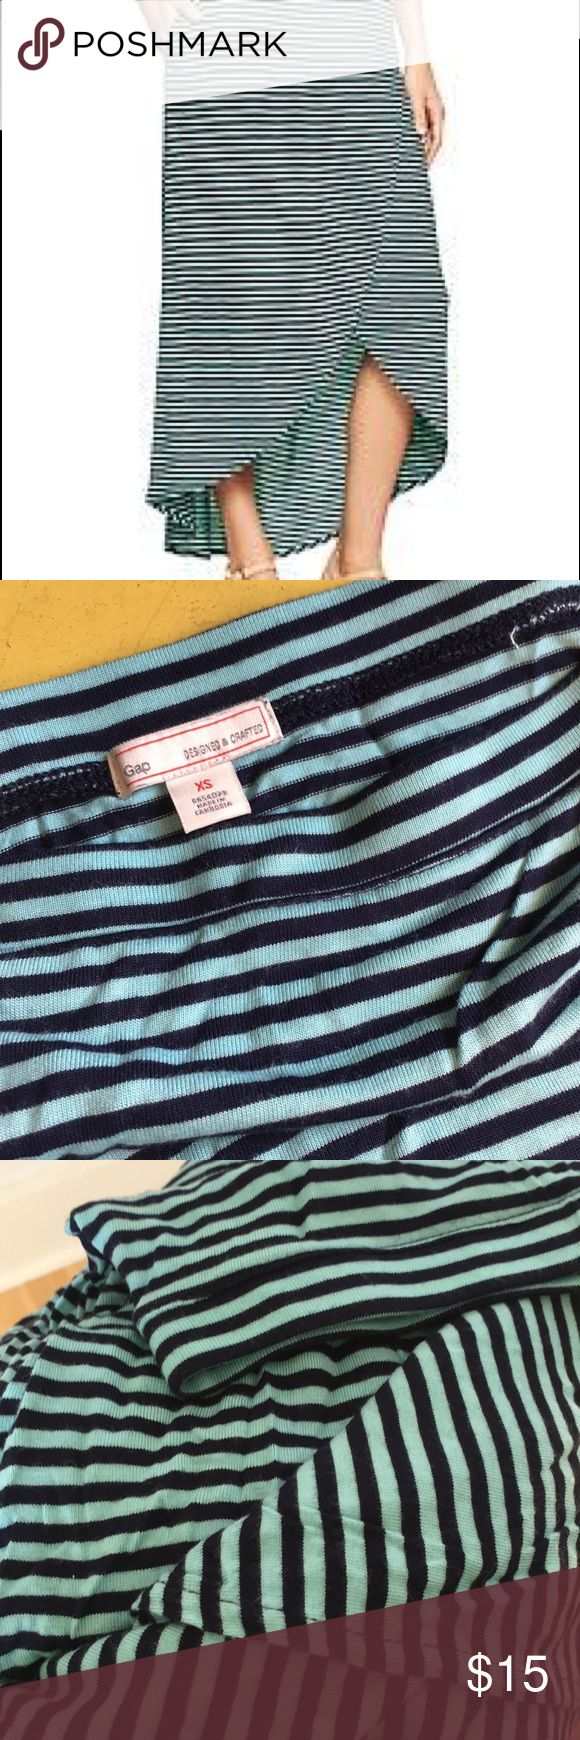 """NWOT XS GAP aqua/navy striped tulip hem skirt NWOT great condition GAP skirt. Skirt is an aqua and navy stripe color and has pockets! The skirt crosses over the front to make the """"tulip"""" and is a high/low length. GAP Skirts Midi"""